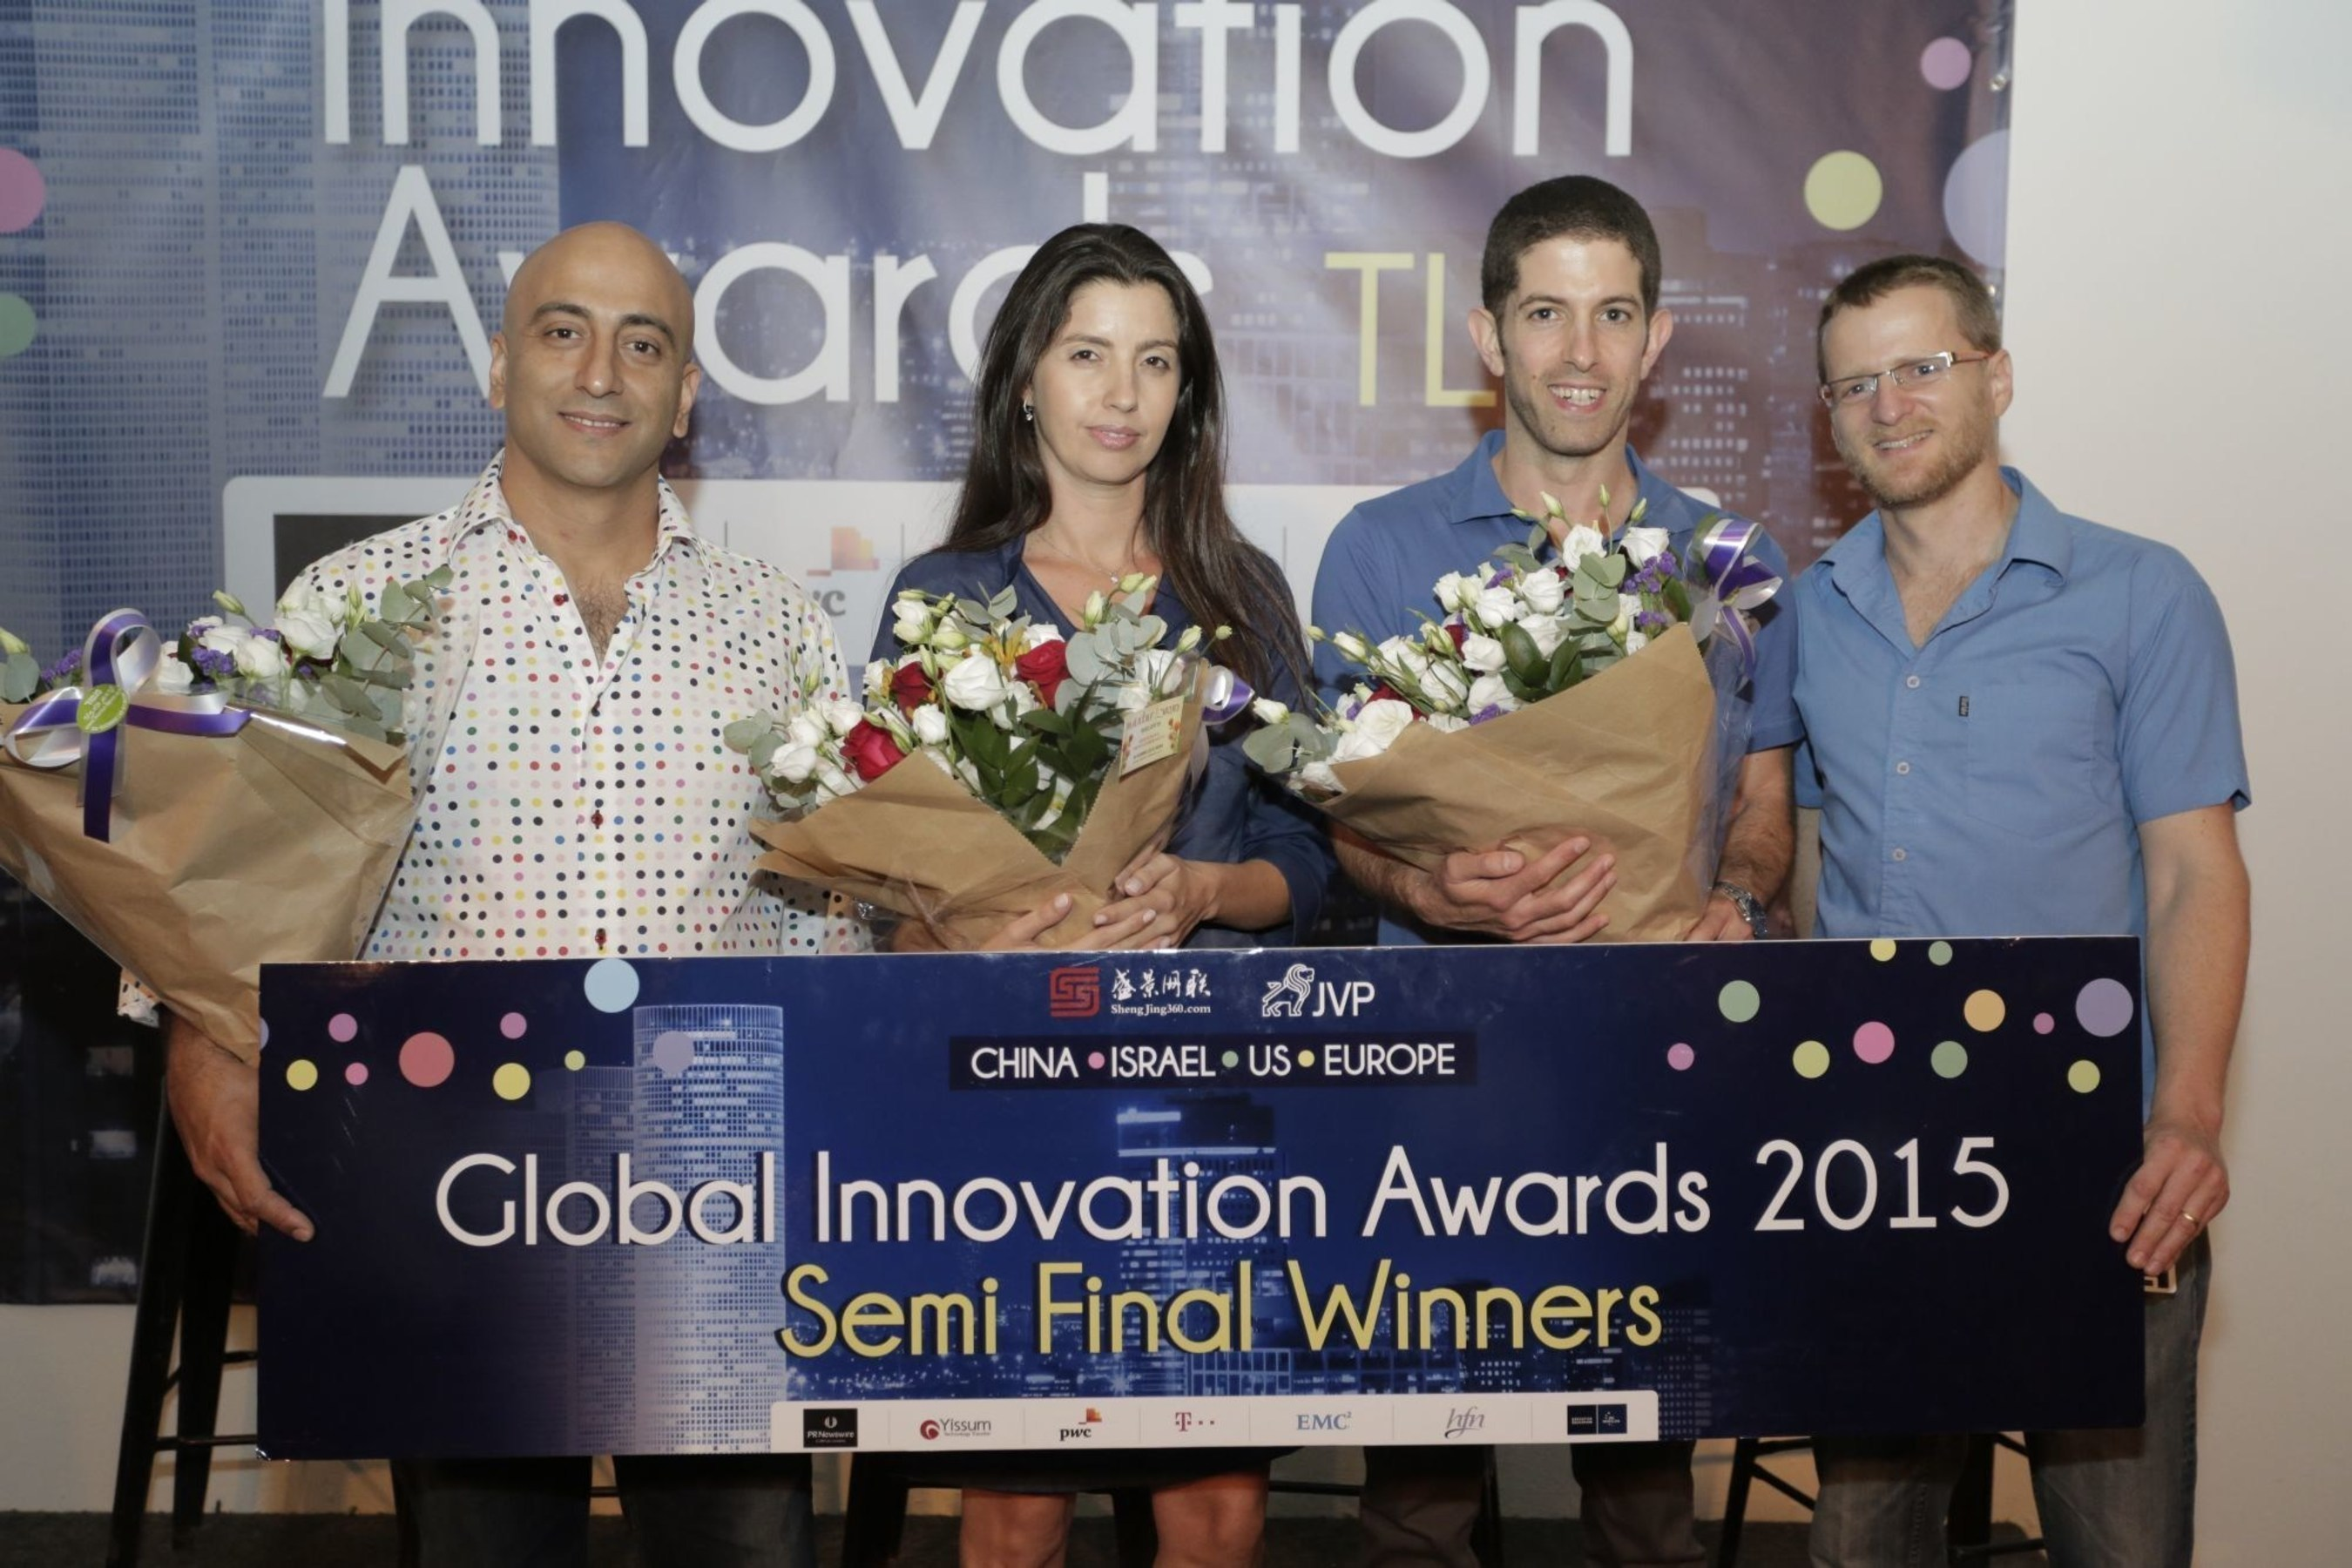 Shengjing Group and JVP Announce the Winners of the Israel Semifinals of the Global Innovation Awards